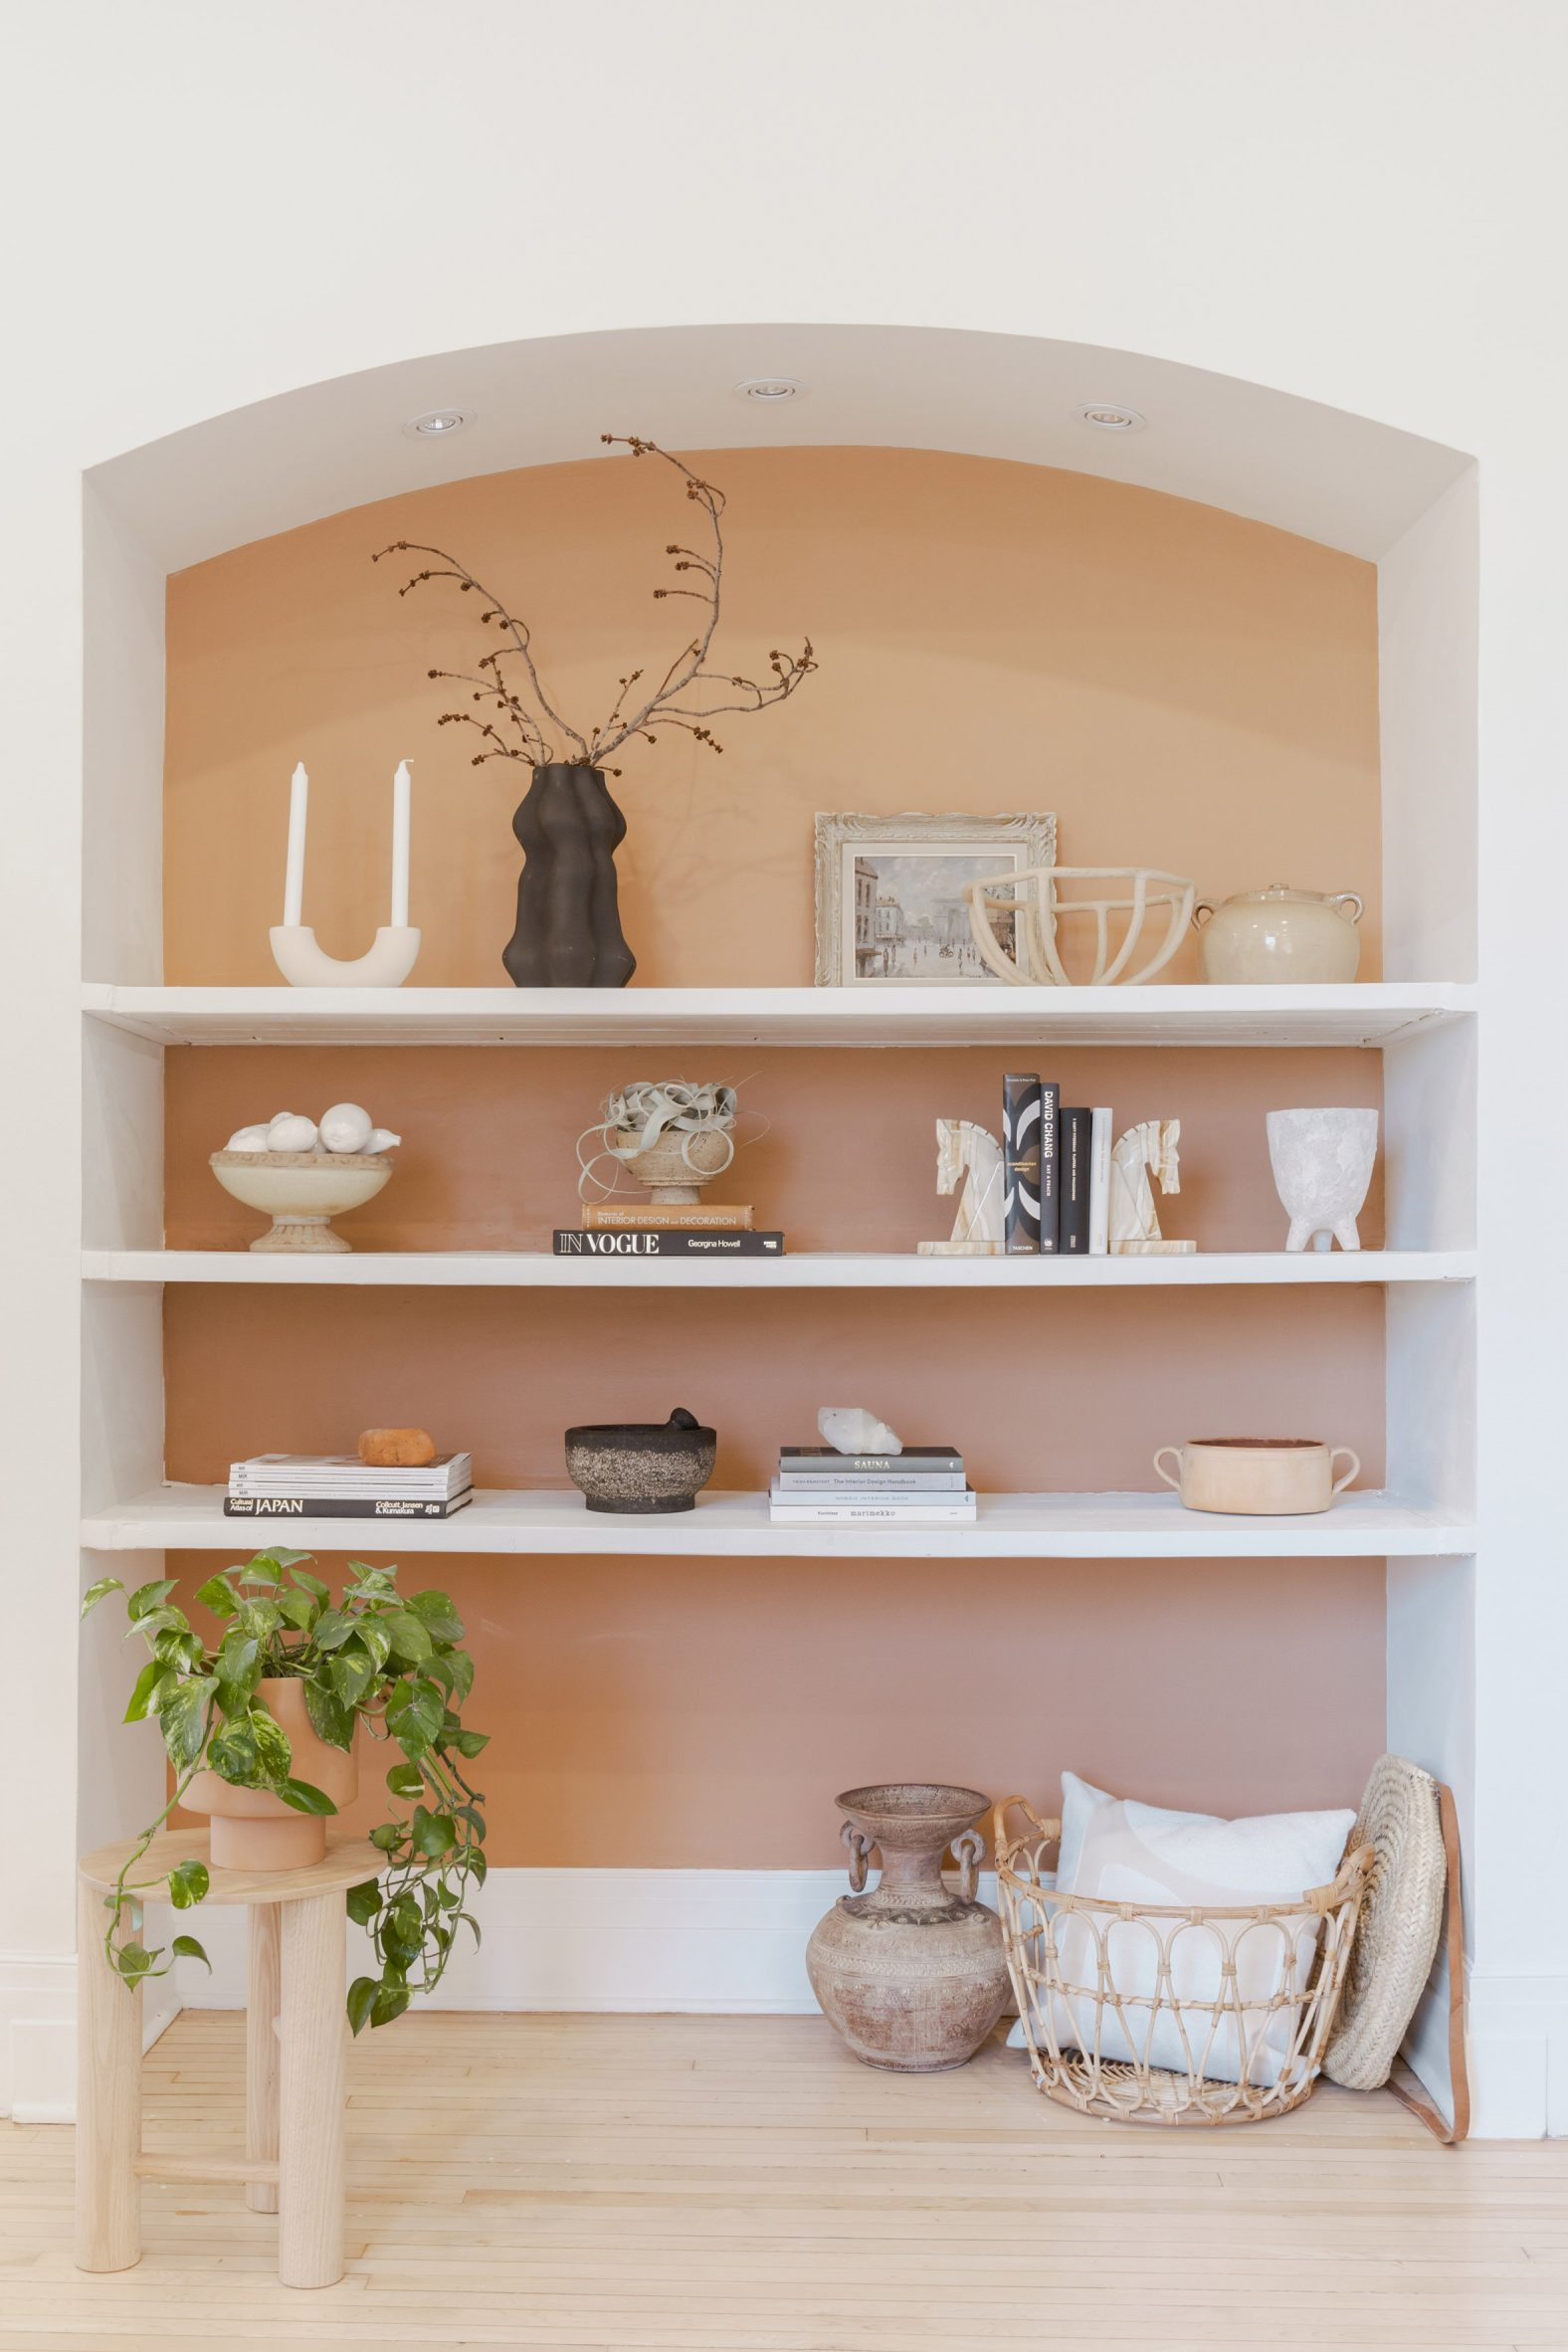 Shelving with peach backdrop